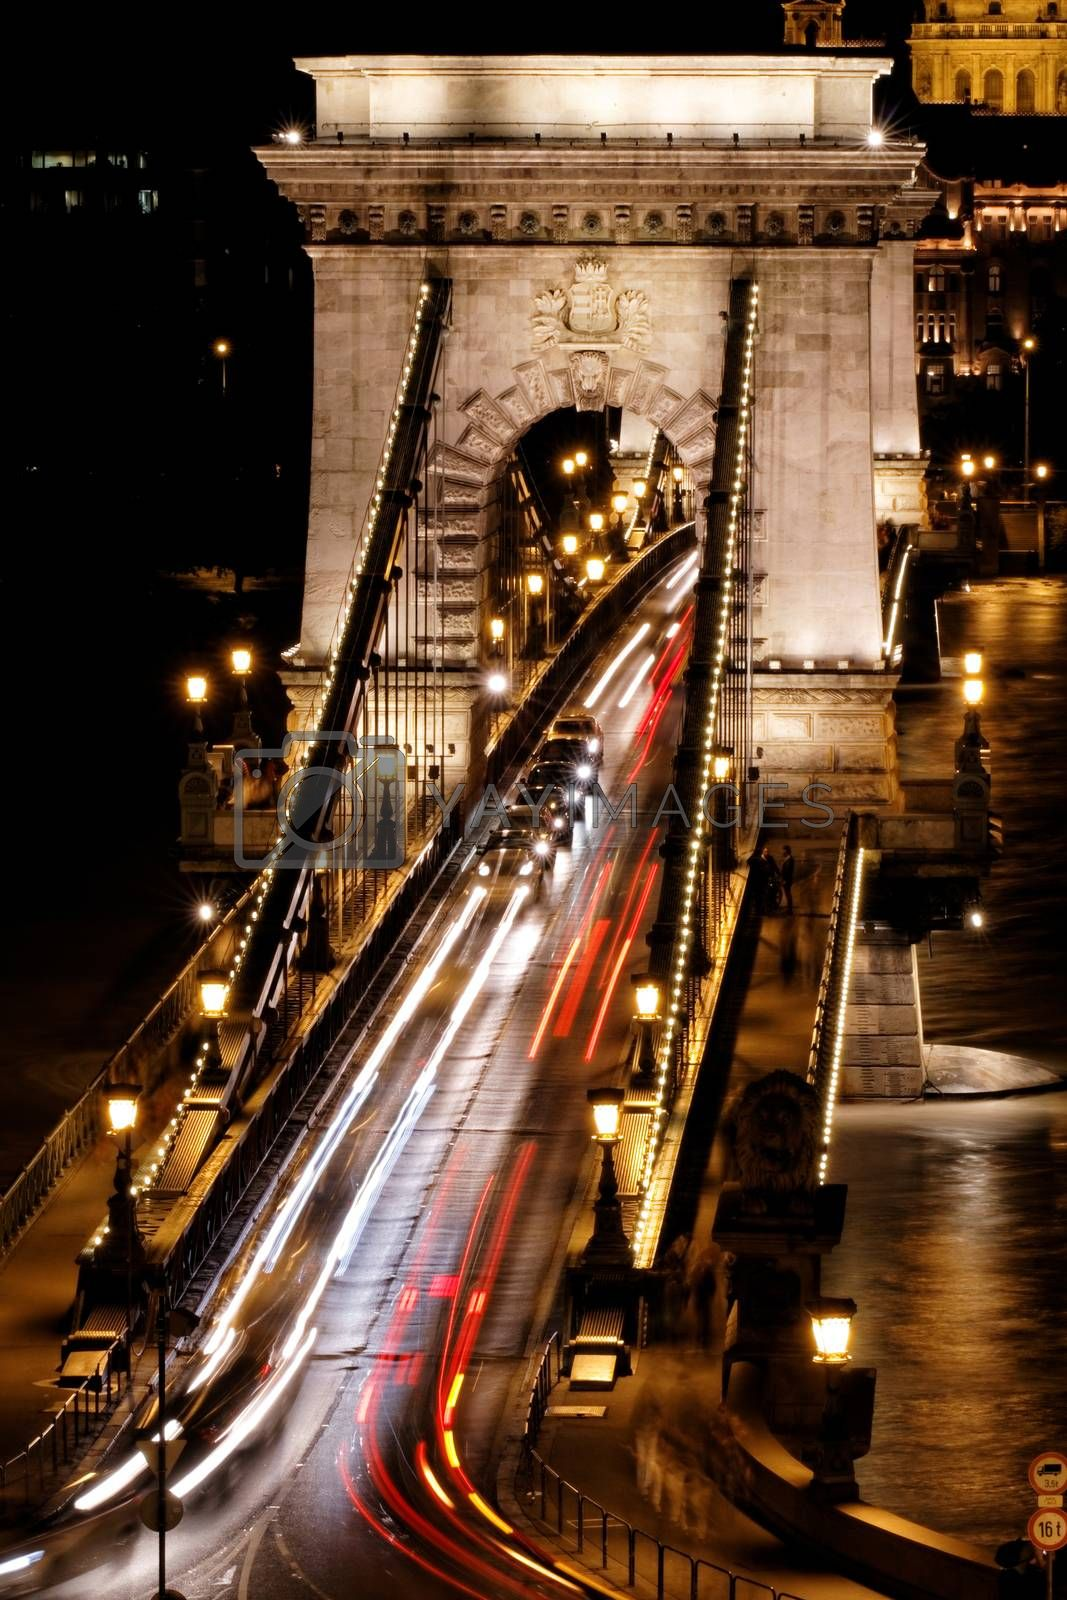 Public transport on the Suspension Bridge at night in Budapest